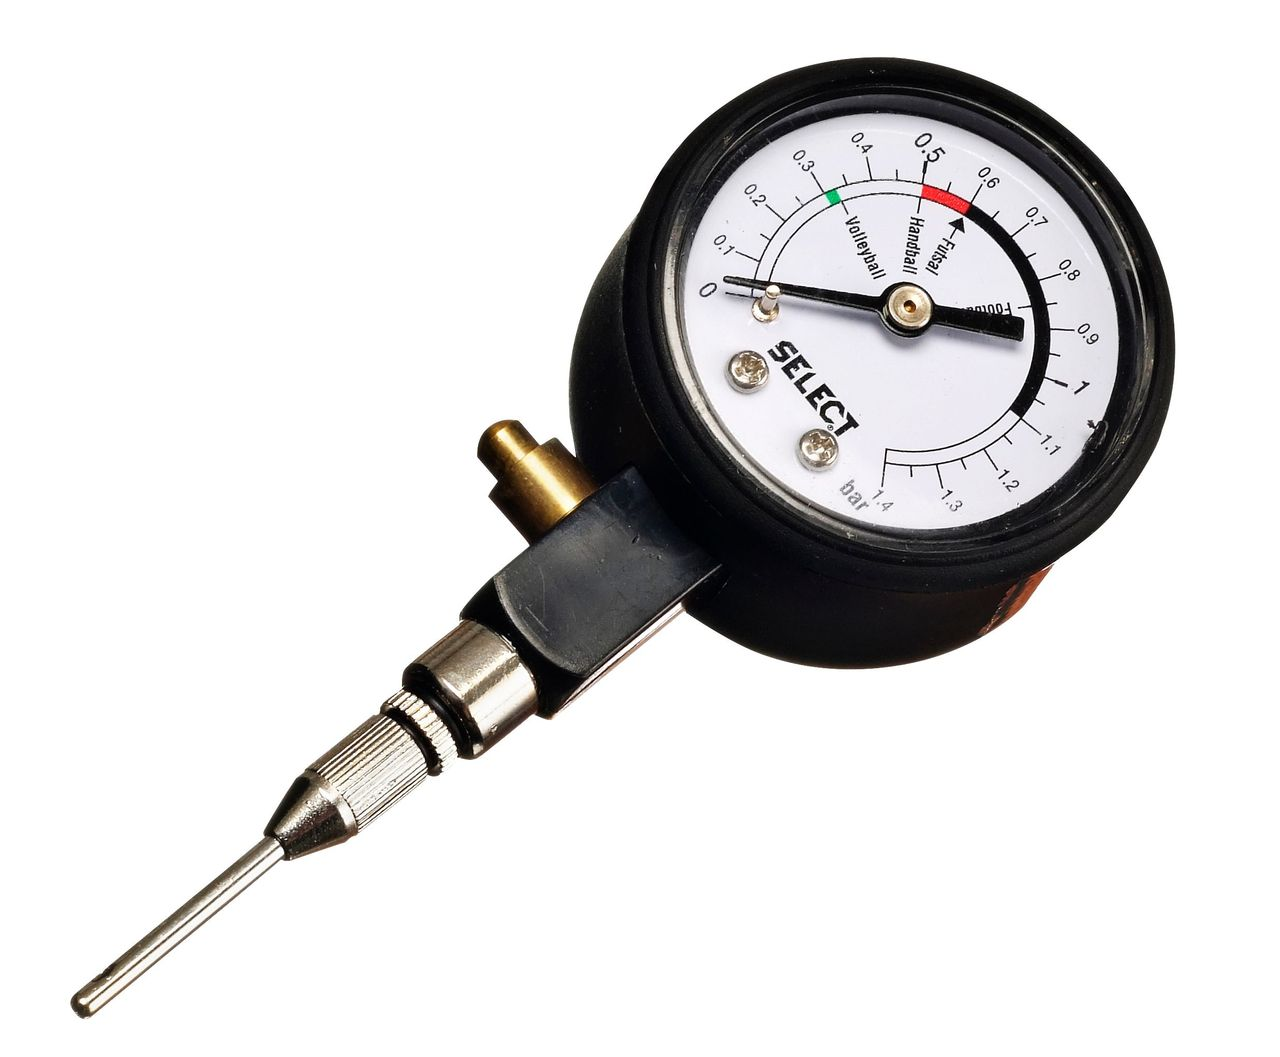 DERBYSTAR analog air pressure gauge